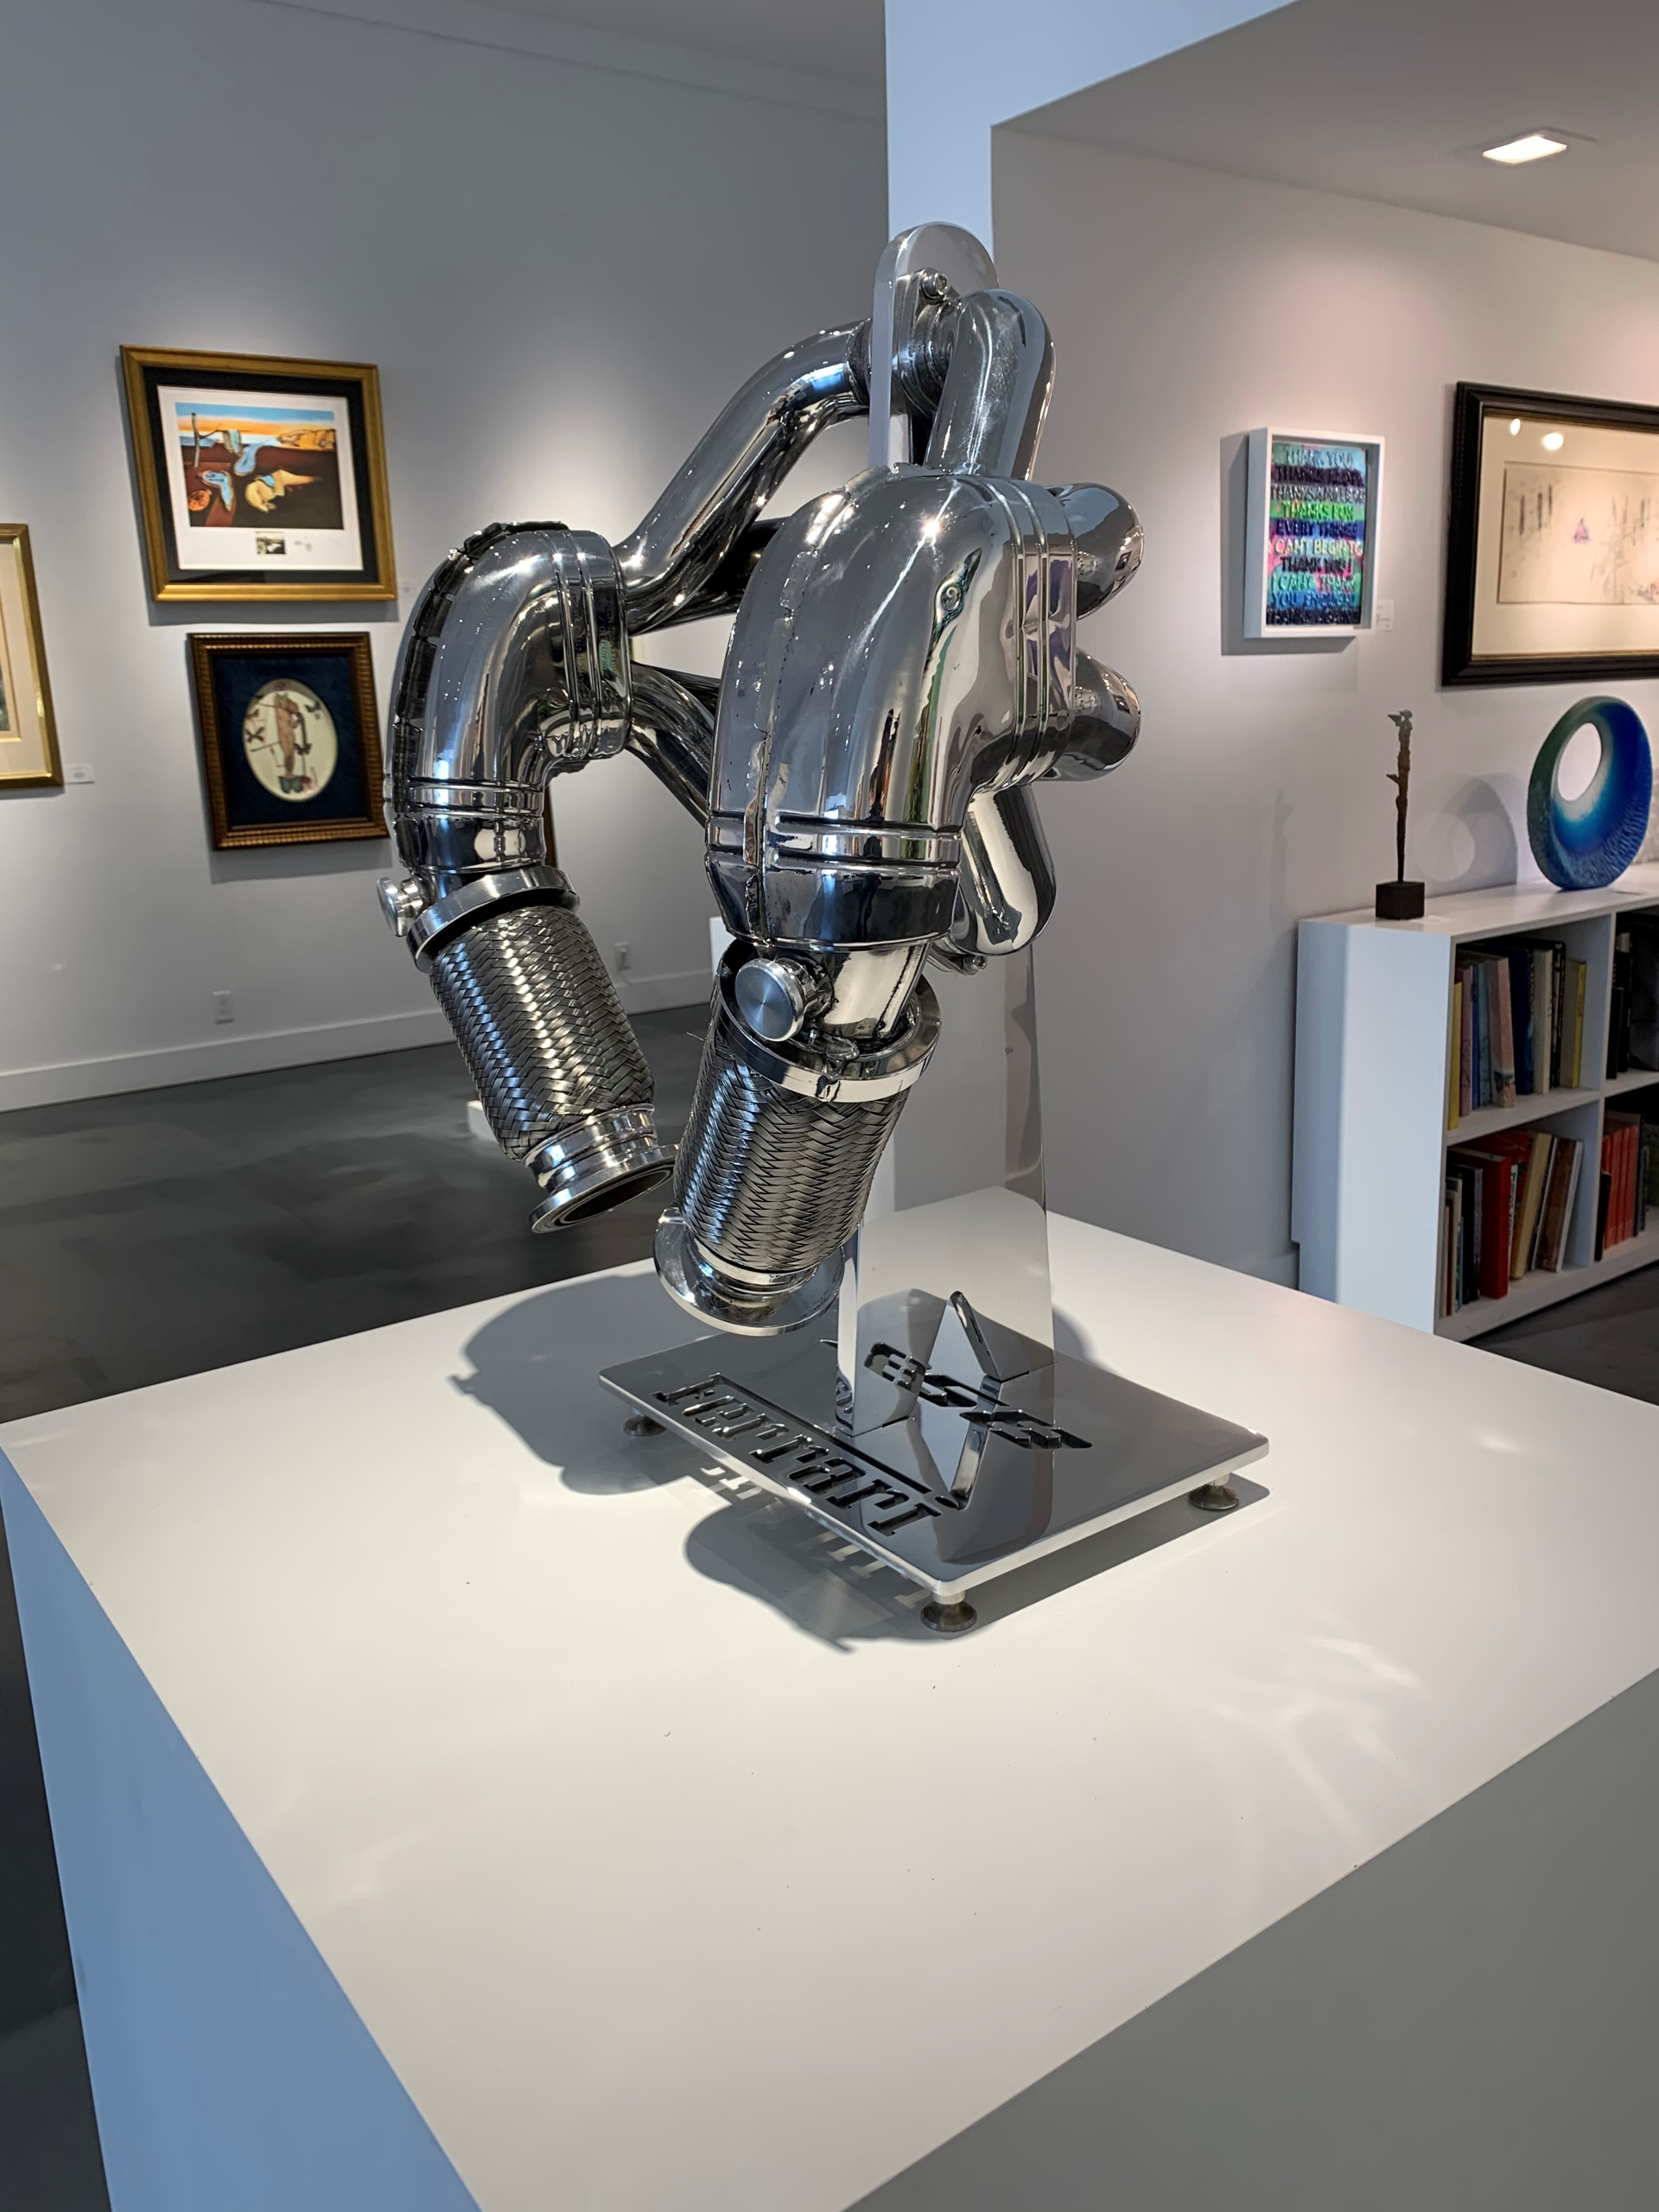 Manifold standing sculpture  by Tom Bates